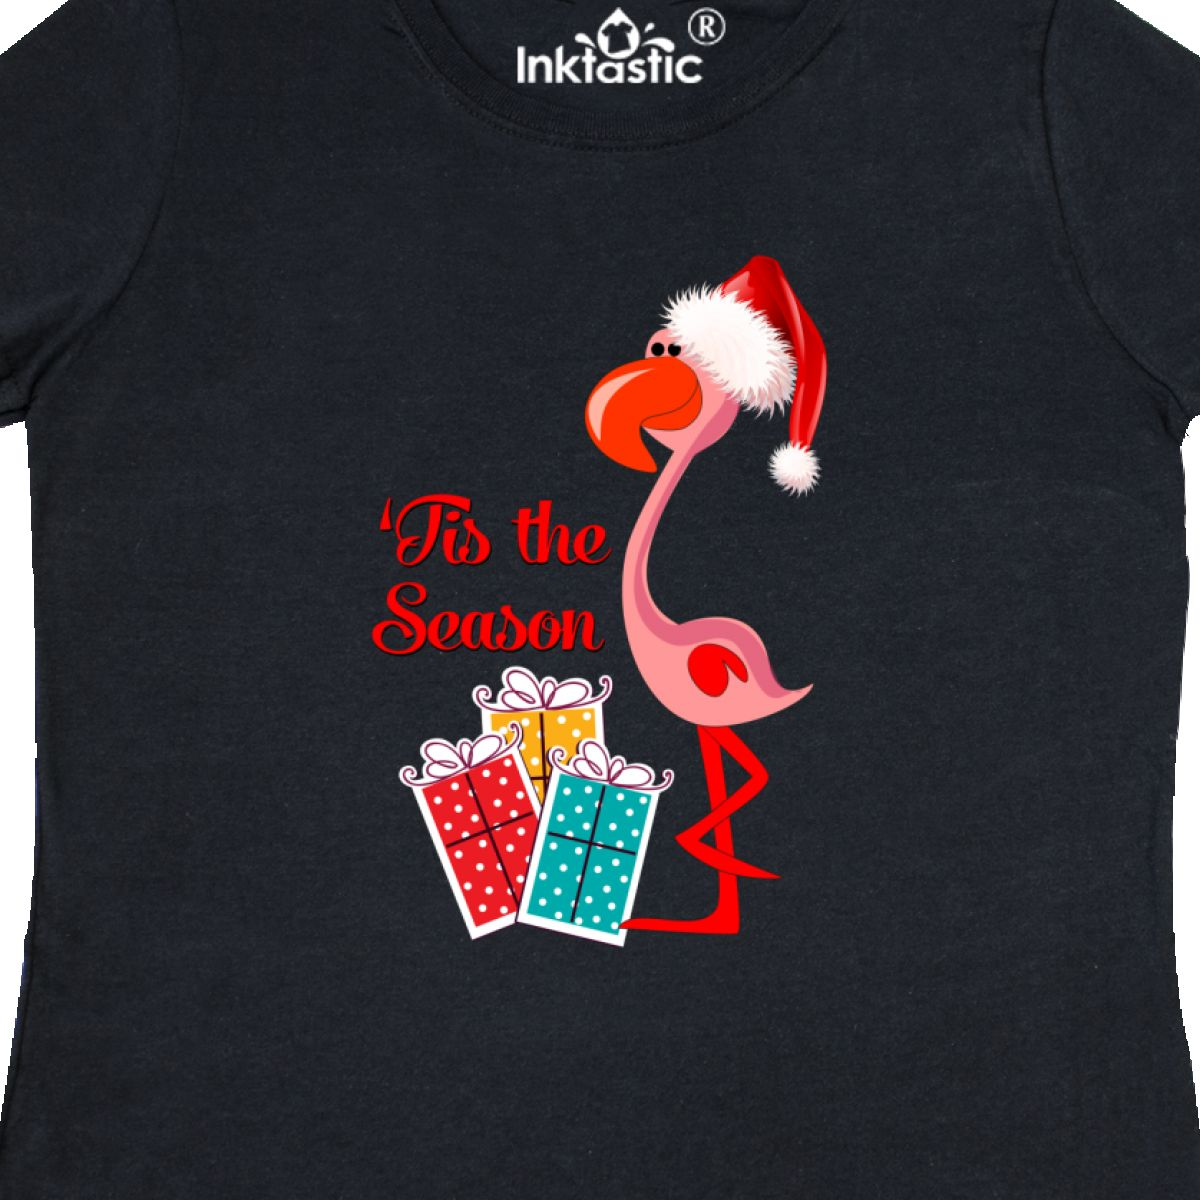 267e0098a50 Inktastic Christmas Flamingo Women s T-Shirt Xmas Santa Merry ...